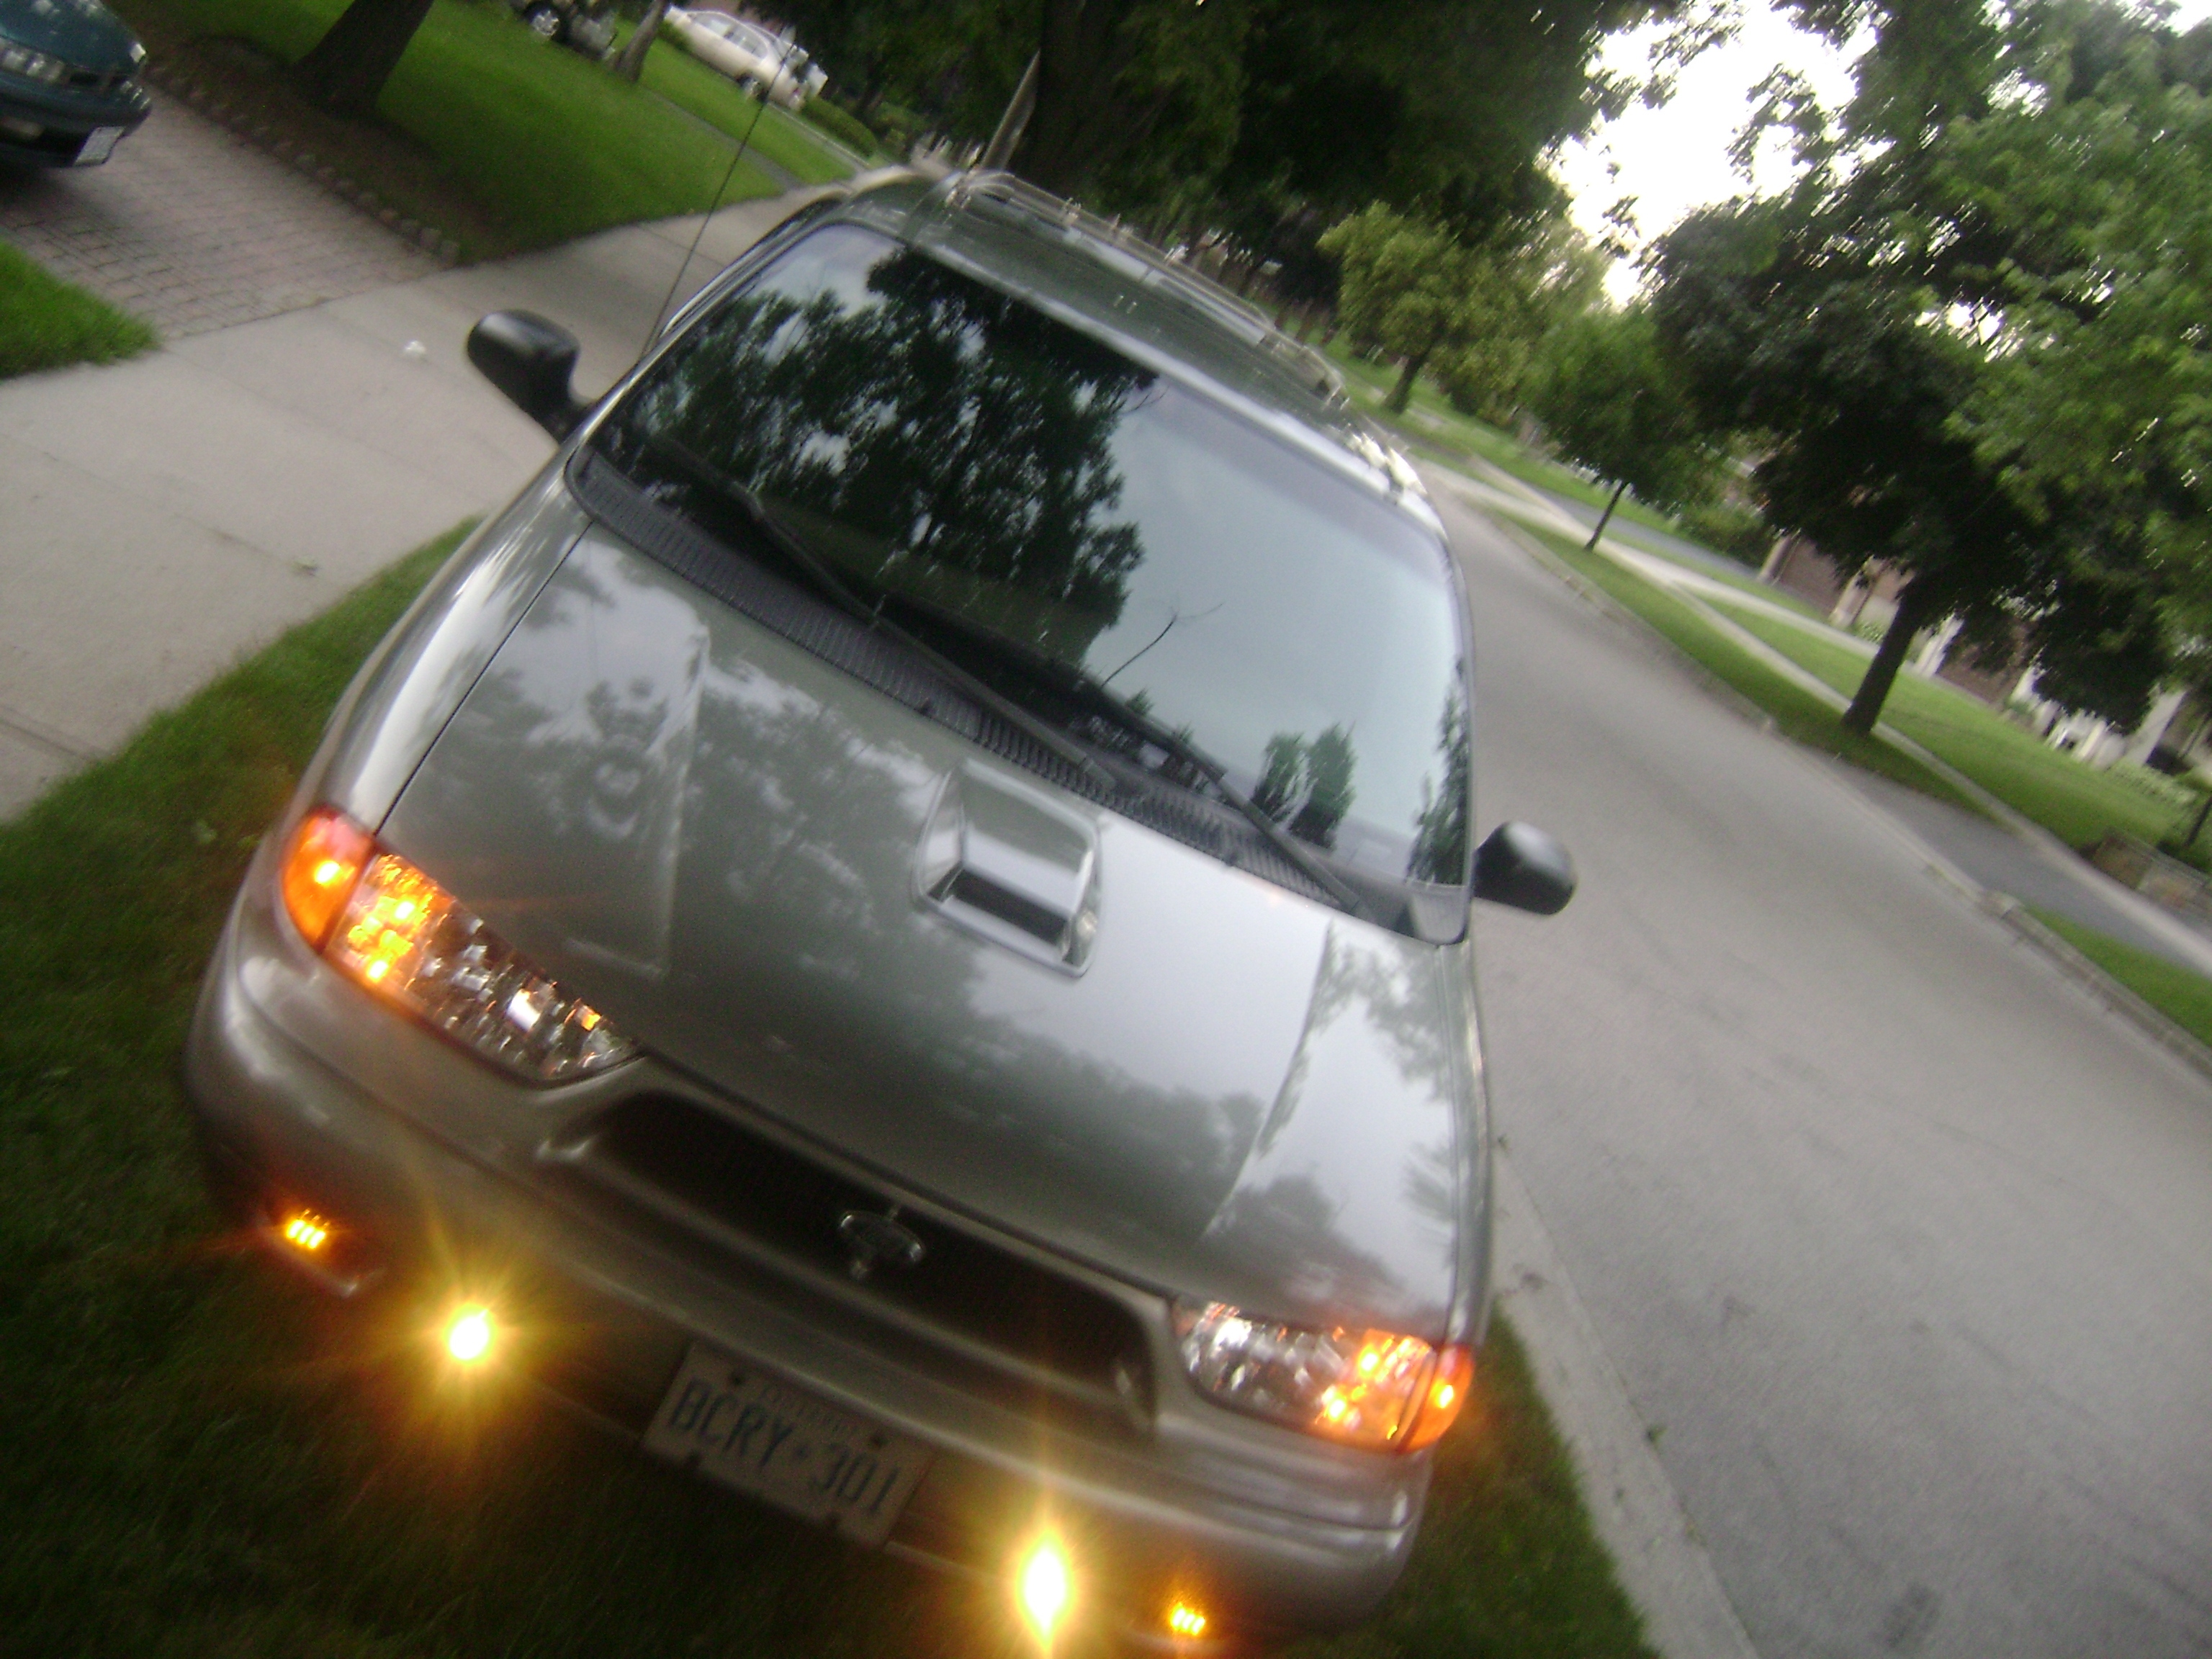 jim_cars15's 1998 Ford Windstar Passenger